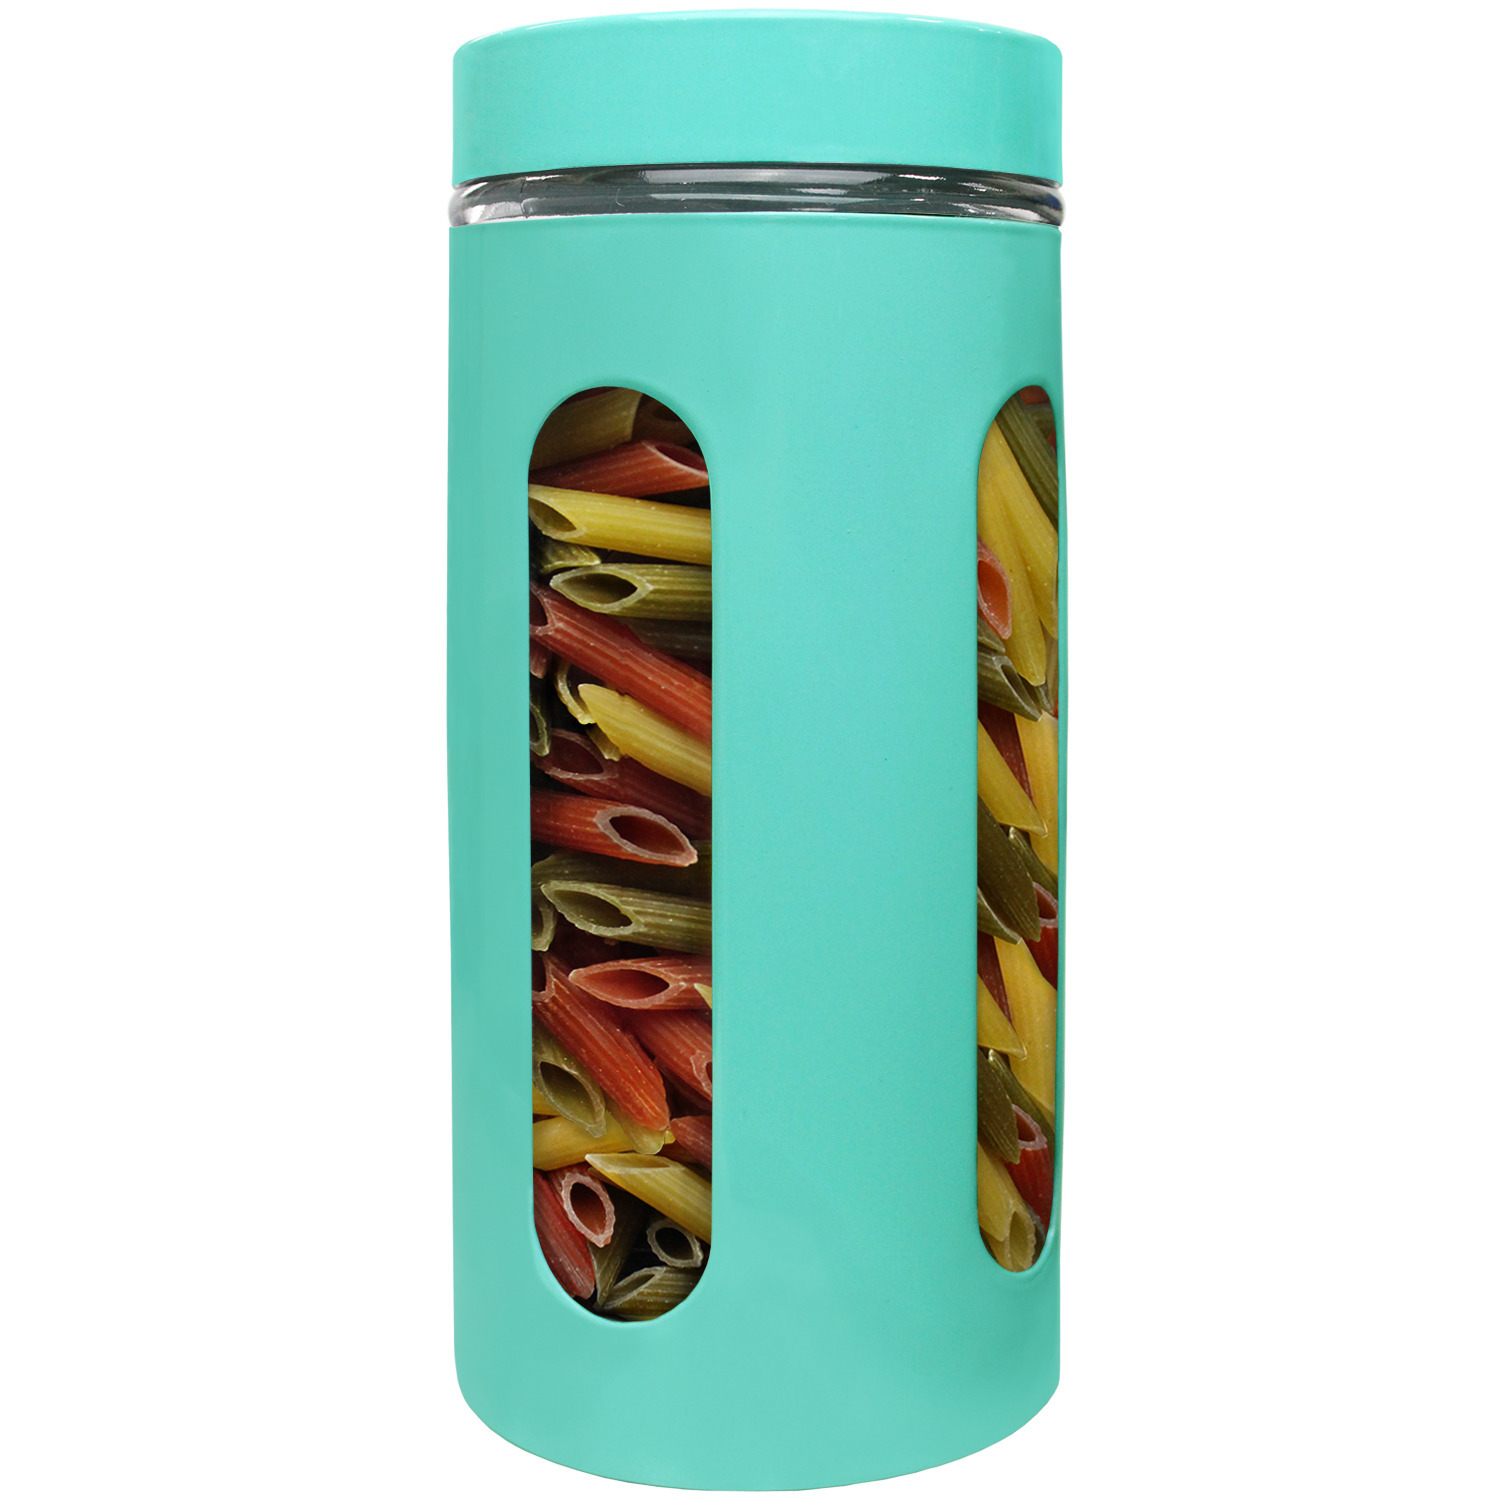 Blue Donuts 44oz Stainless Steel Canister with Window - Turquoise